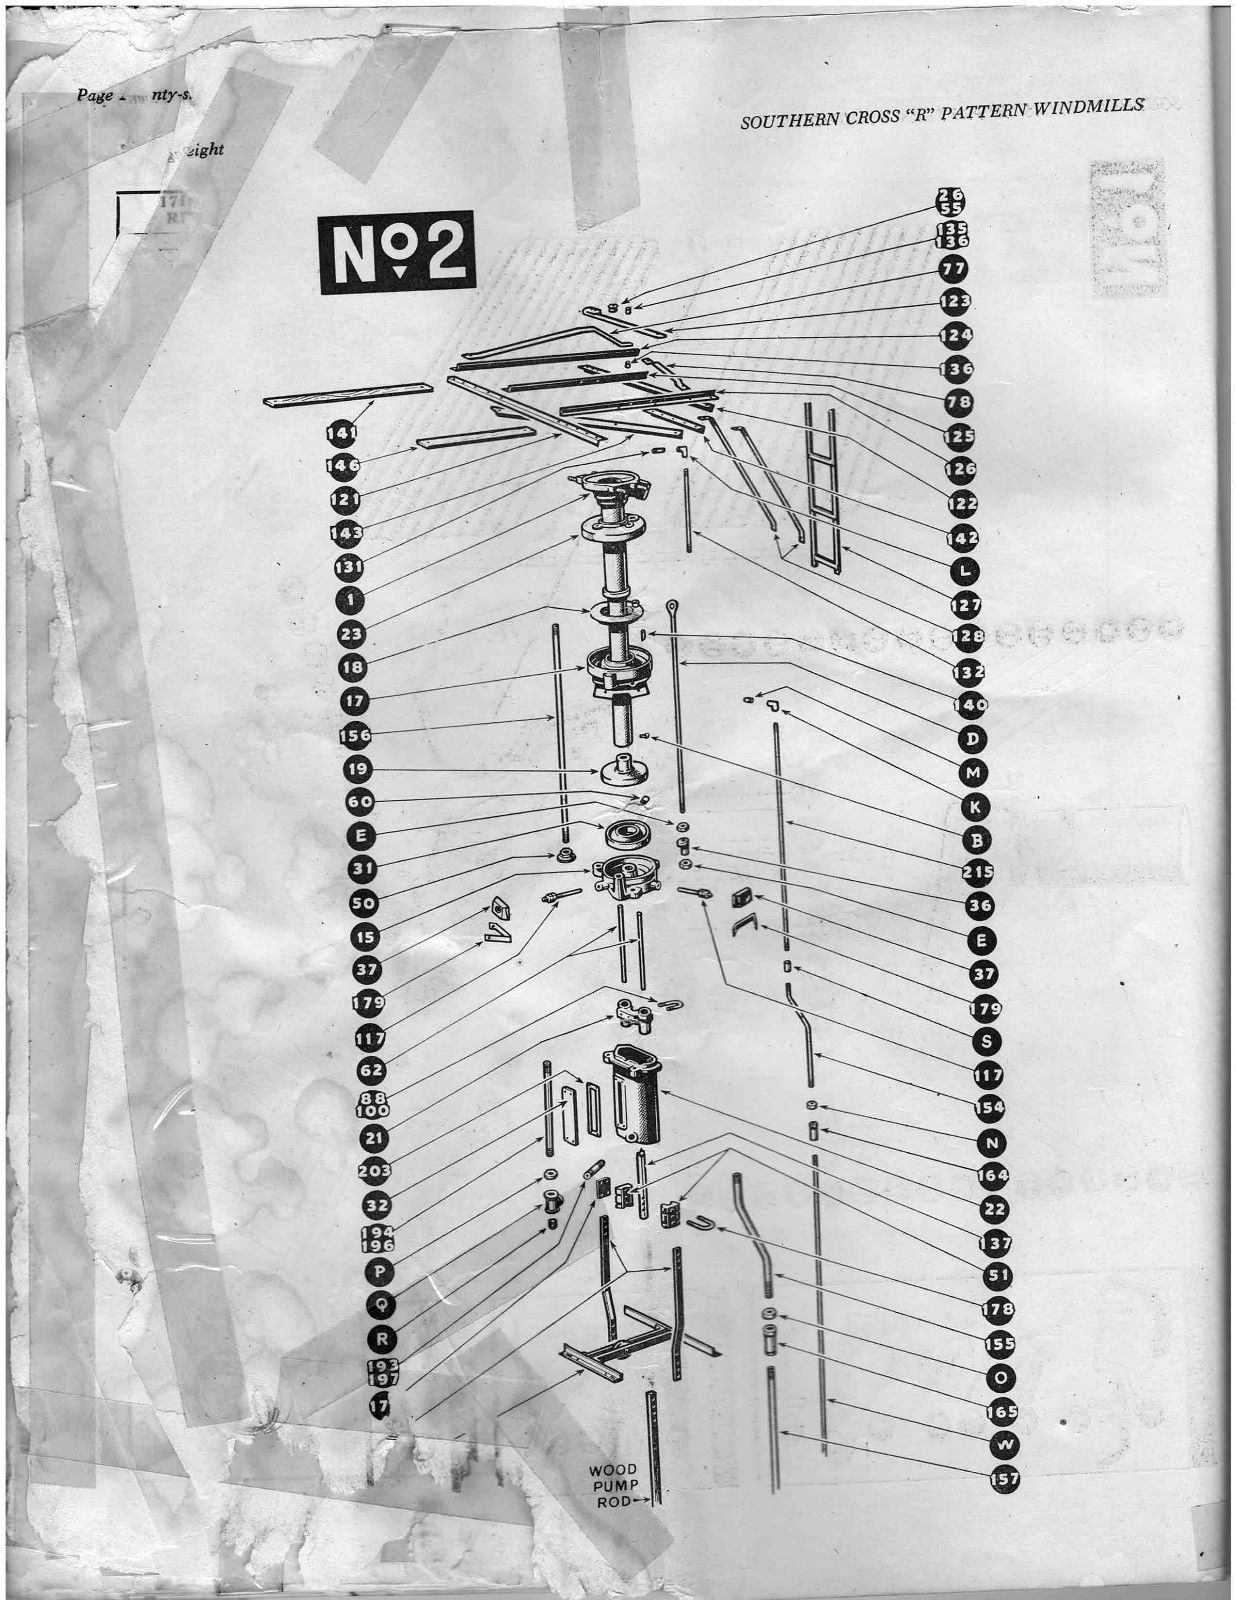 Southern cross r pattern windmill erecting instructions manual southern cross r pattern windmill erecting instructions manual 28 pages on cd ebay pooptronica Gallery